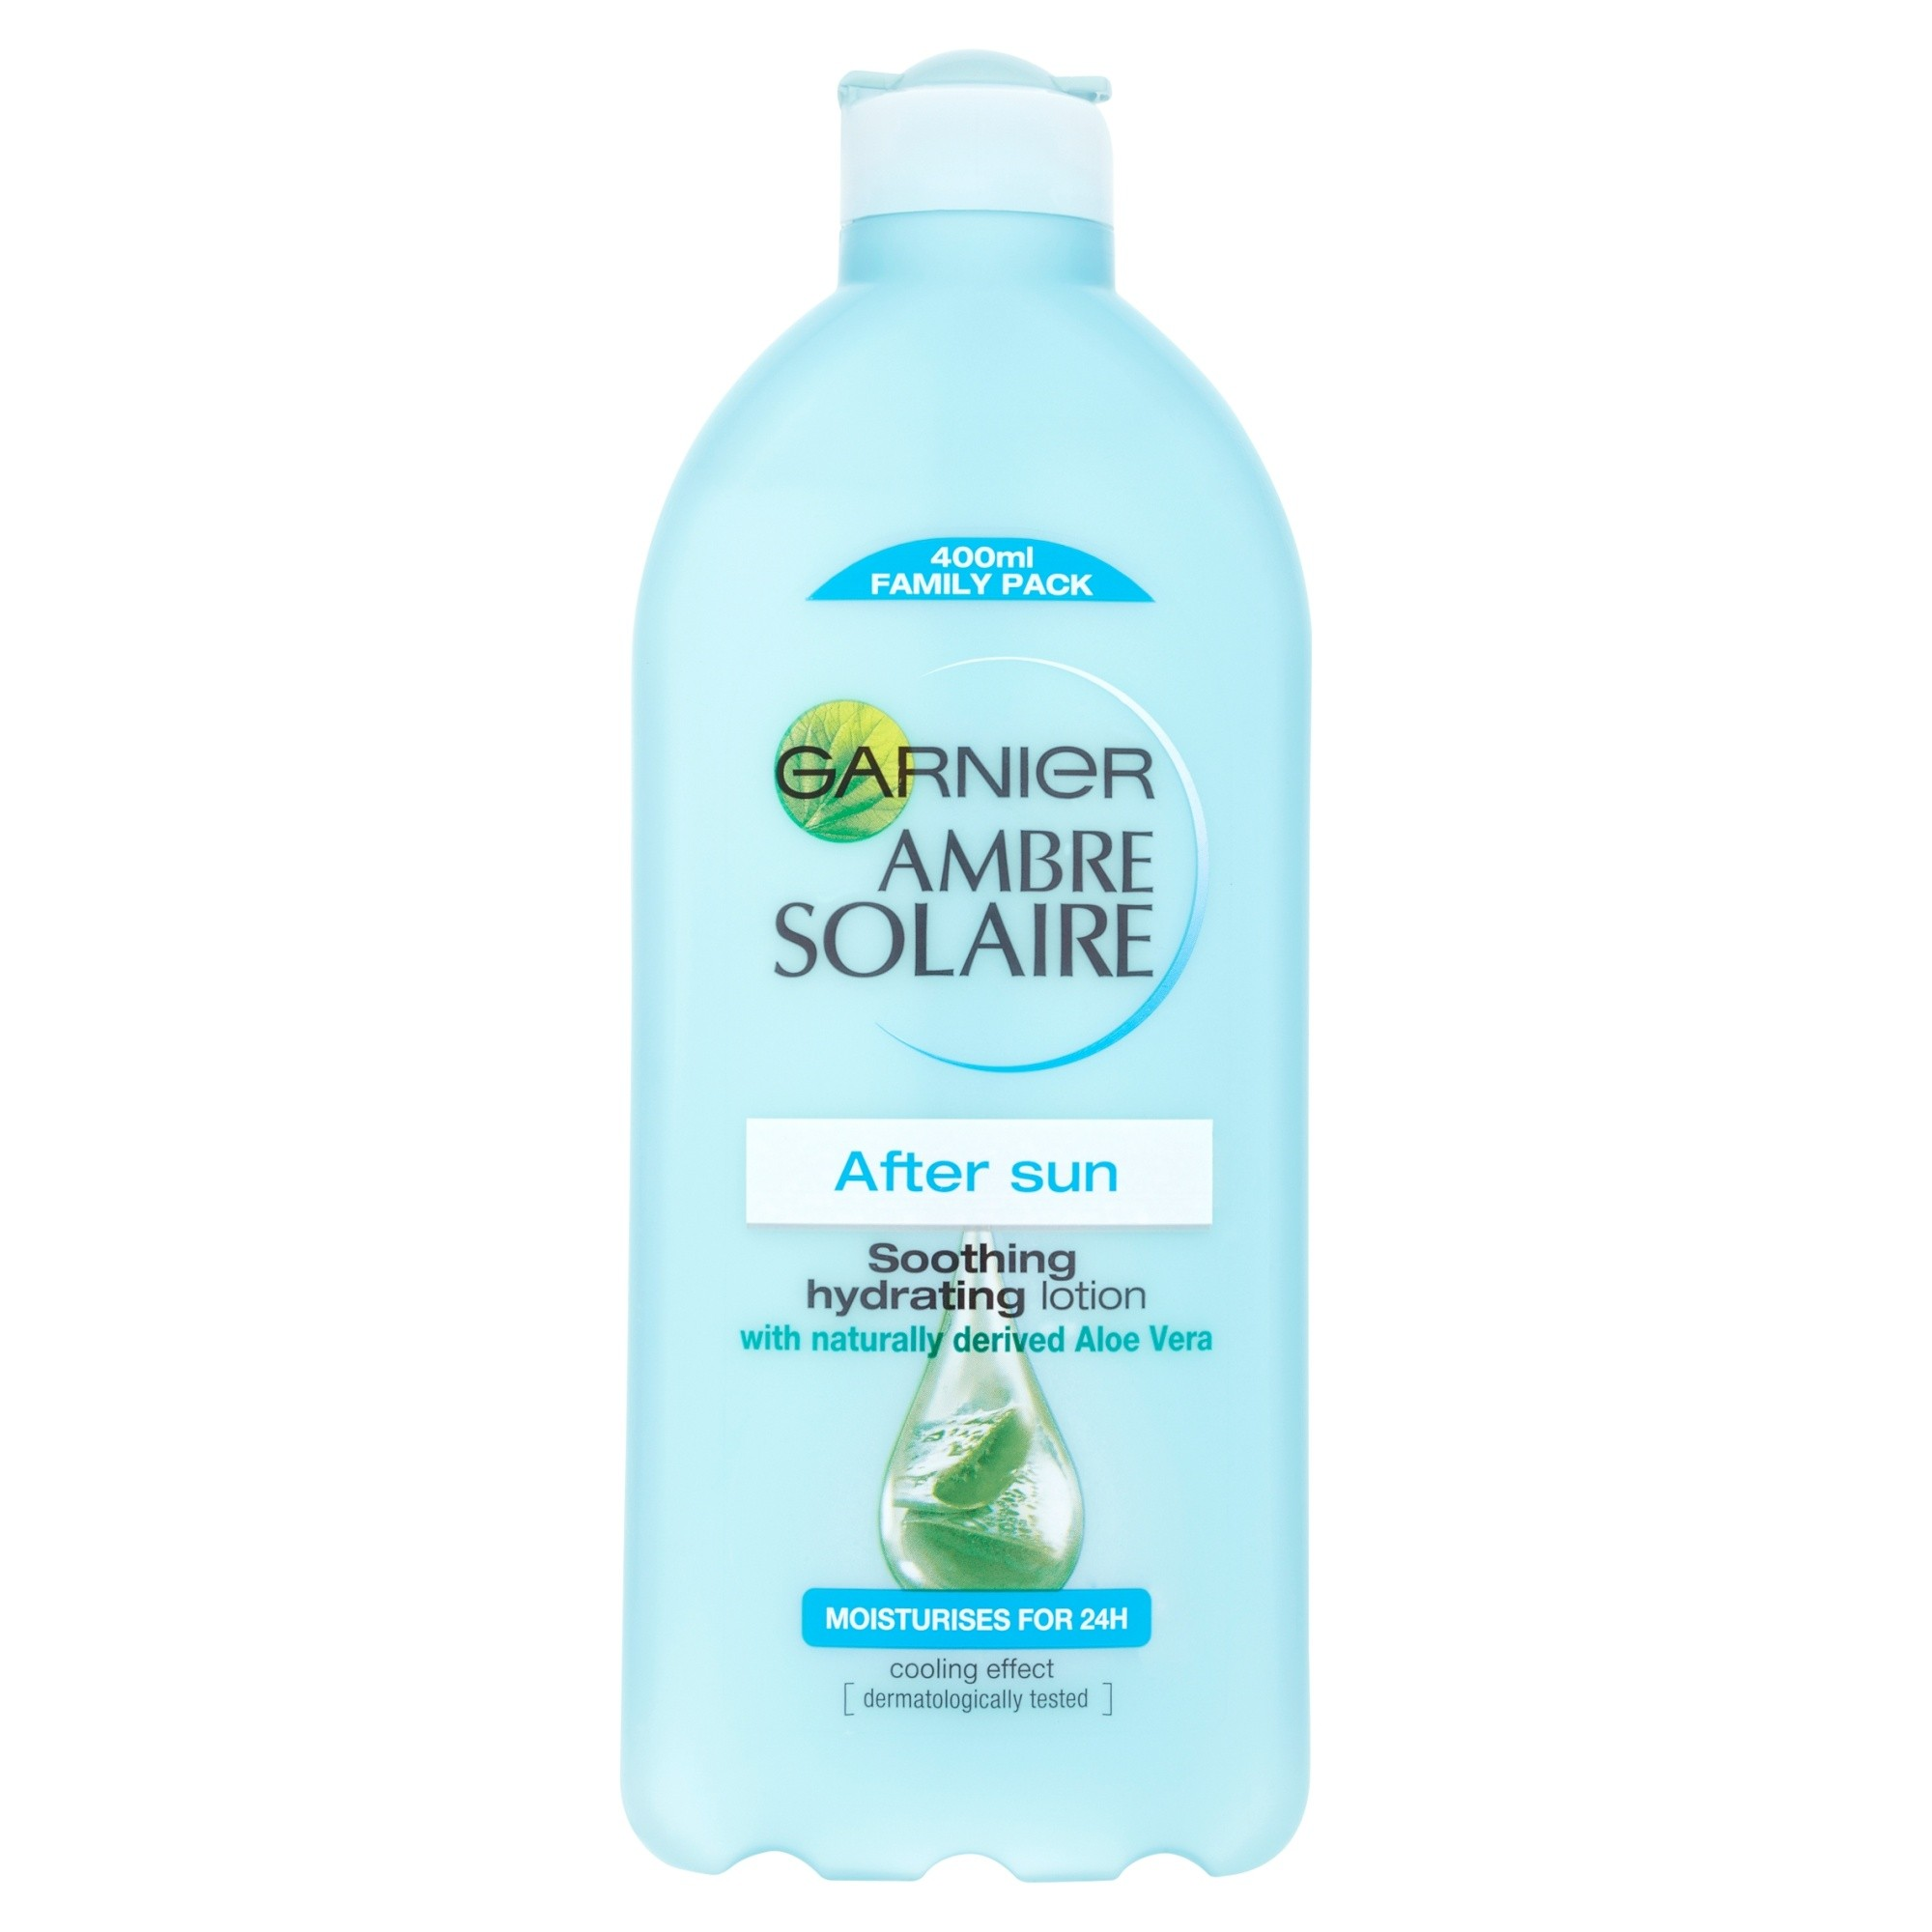 Garnier Ambre Solaire After Sun Lotion